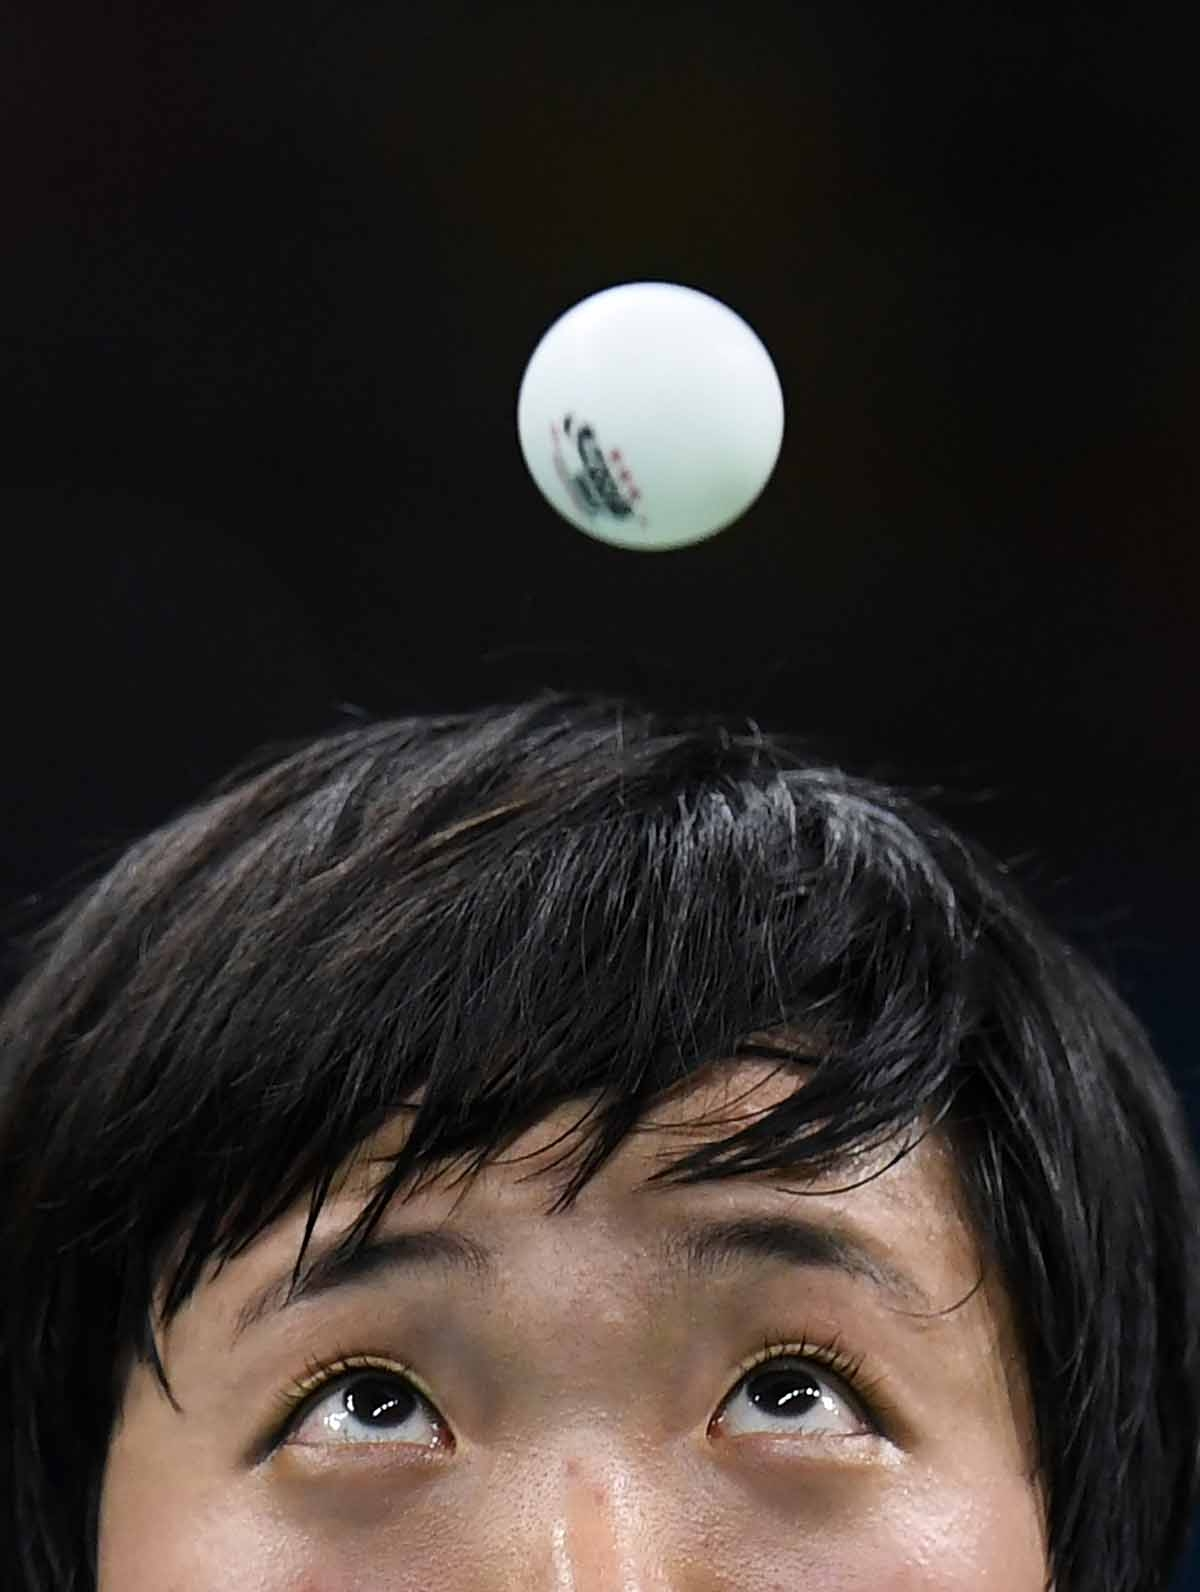 North Korea's Kim Song I eyes the ball as she serves against Japan's Ai Fukuhara in their women's singles bronze medal table tennis match at the Riocentro venue during the Rio 2016 Olympic Games in Rio de Janeiro on August 10, 2016.